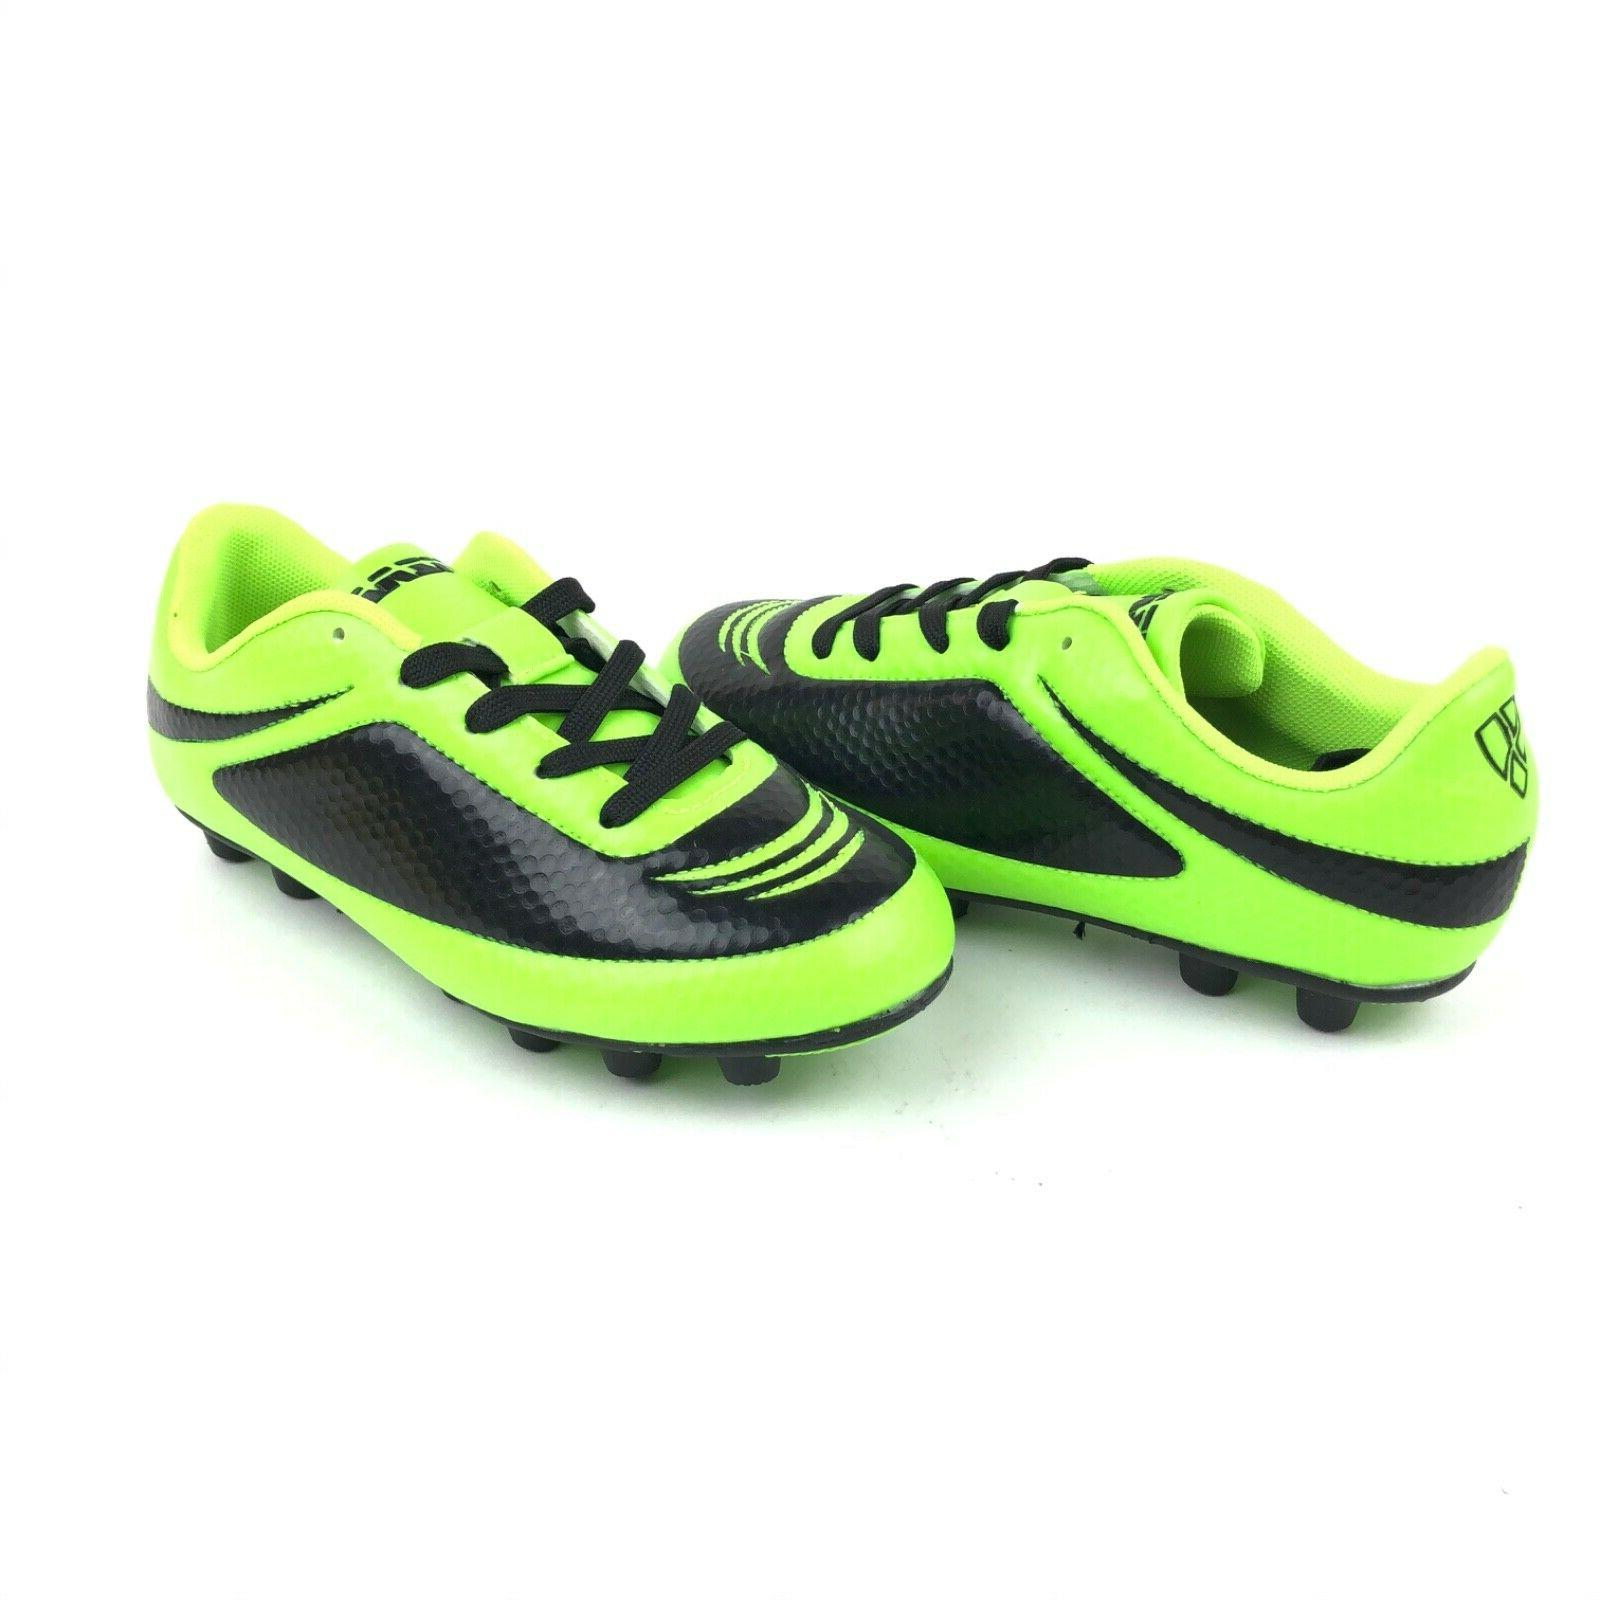 infinity fg soccer cleat kid s size